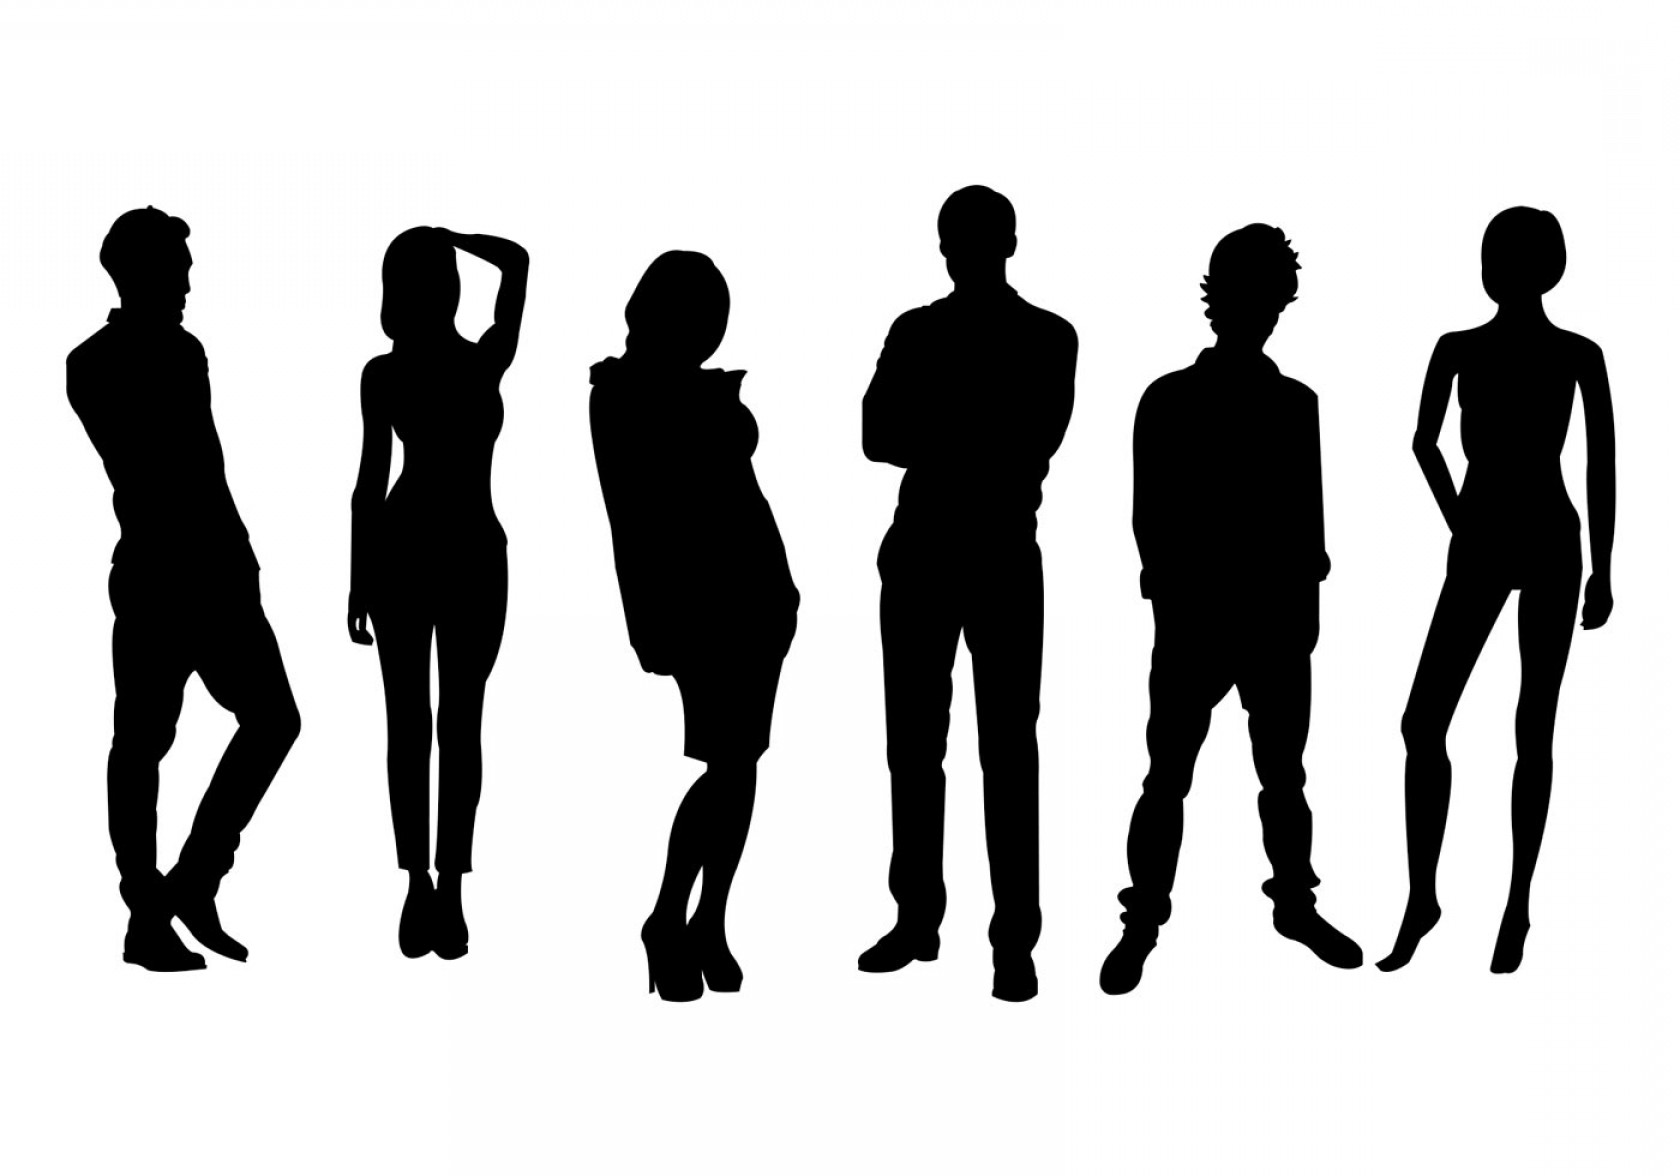 Male Silhouette Vector Art: Men And Women Silhouette Vector Set